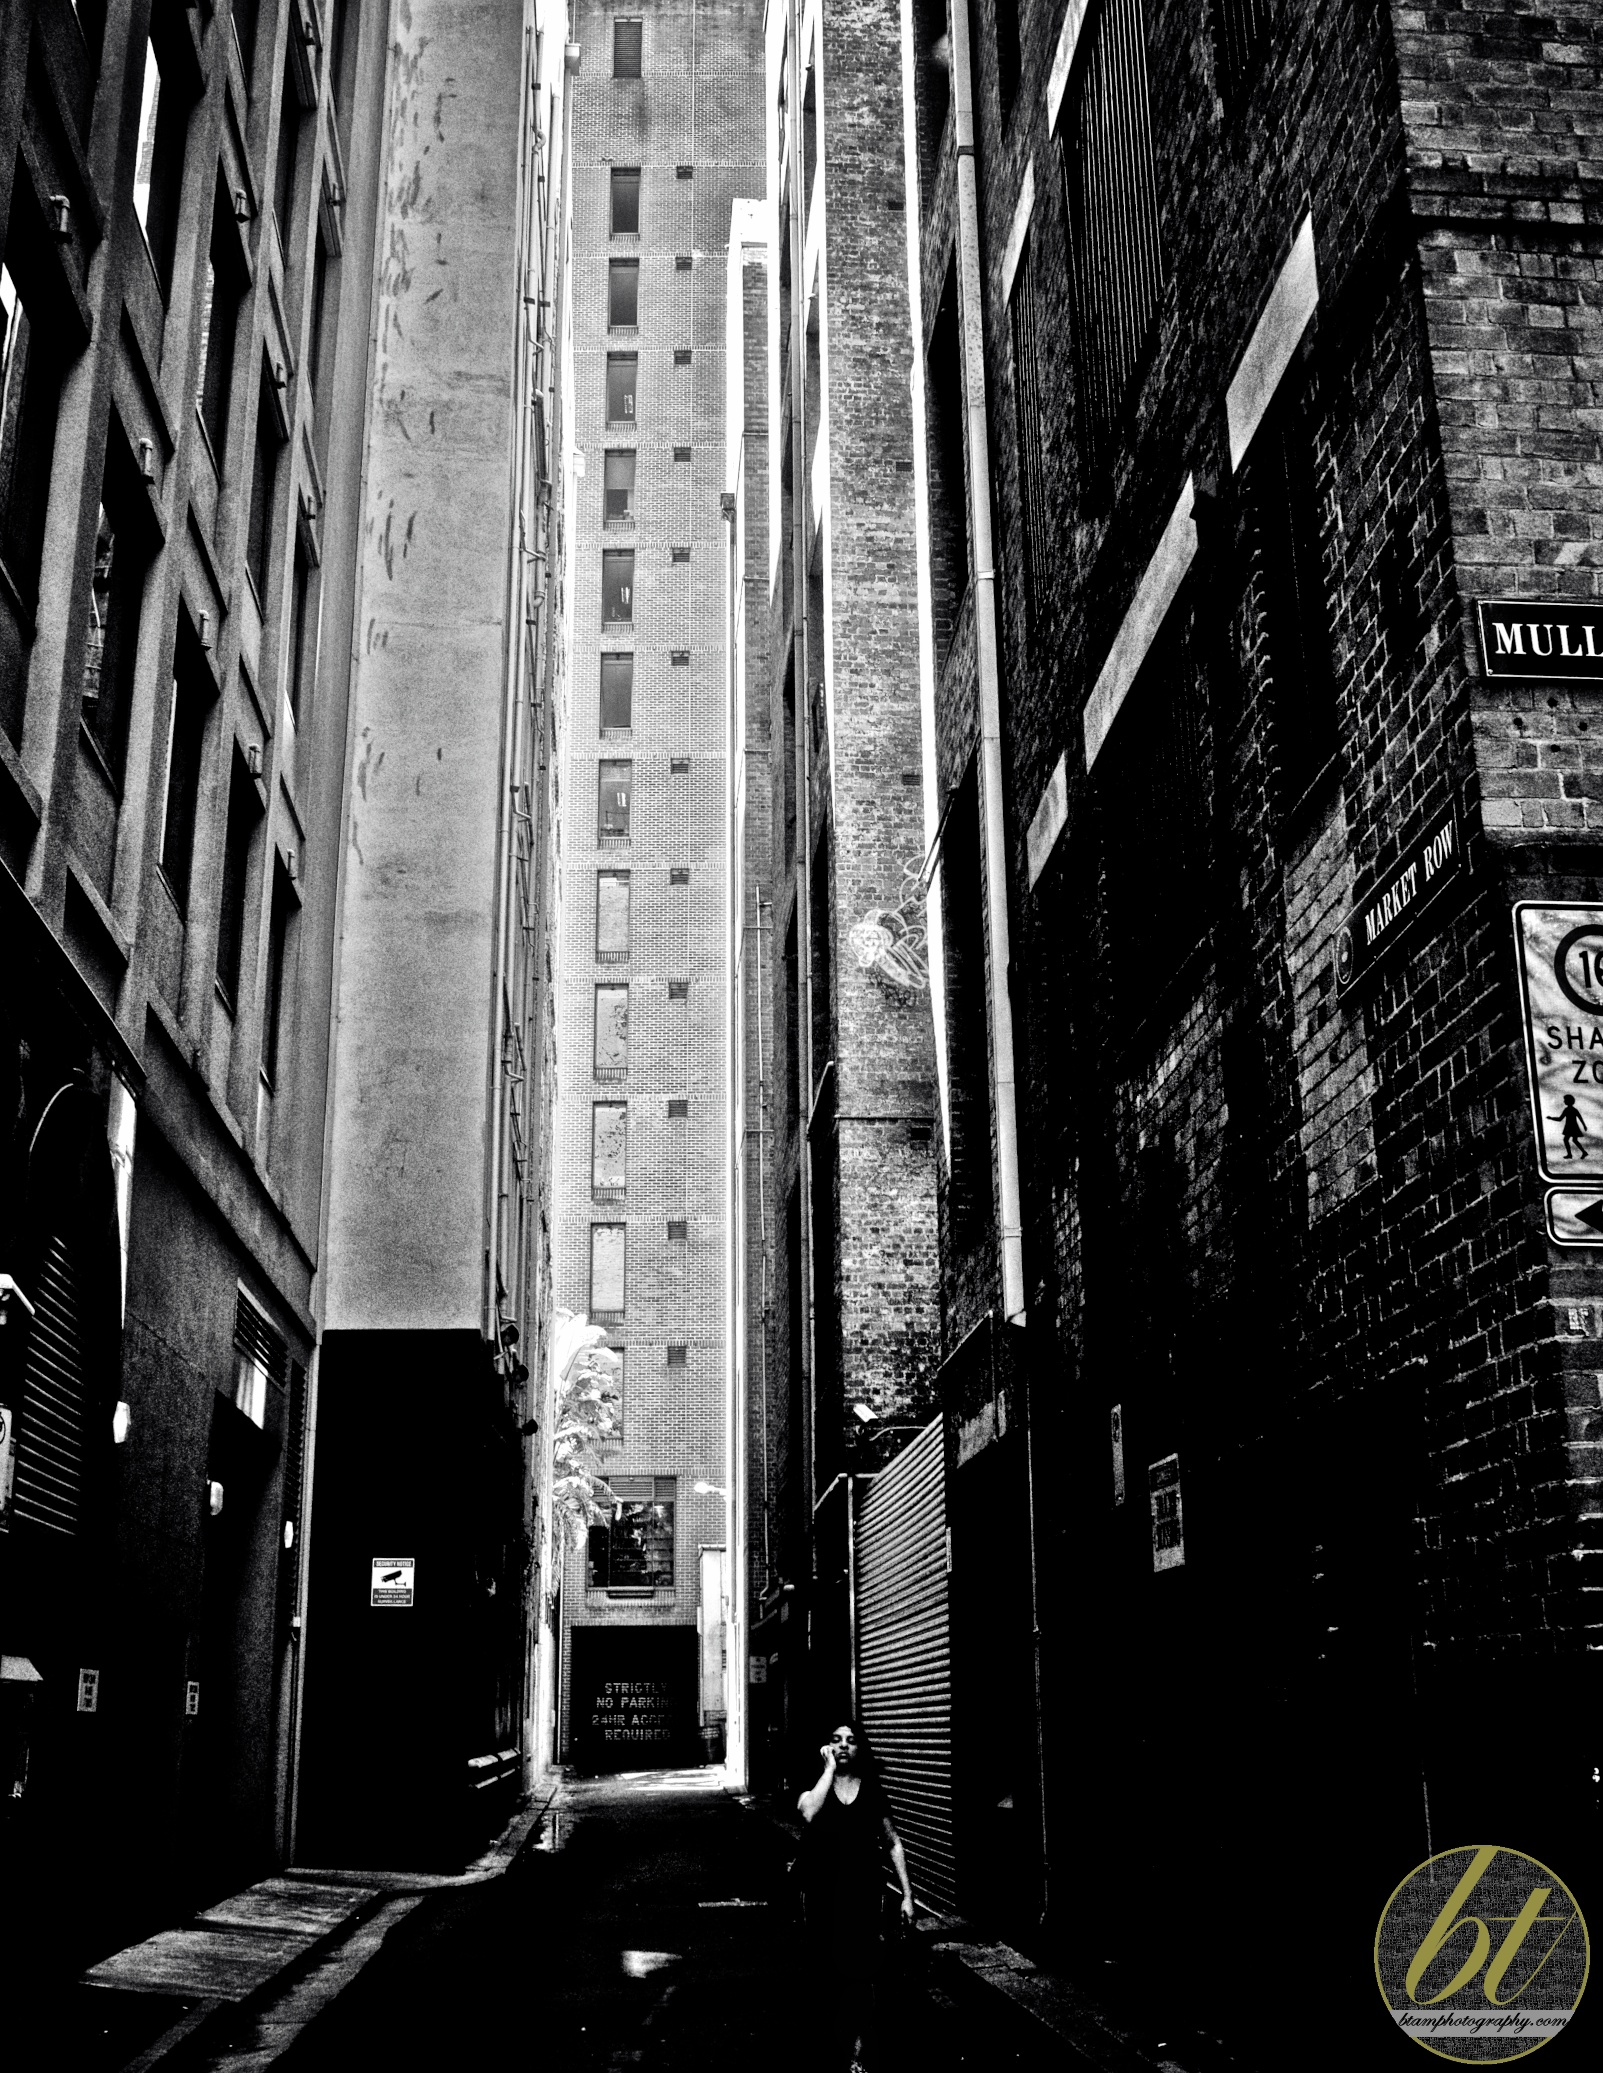 Market Row alleyway